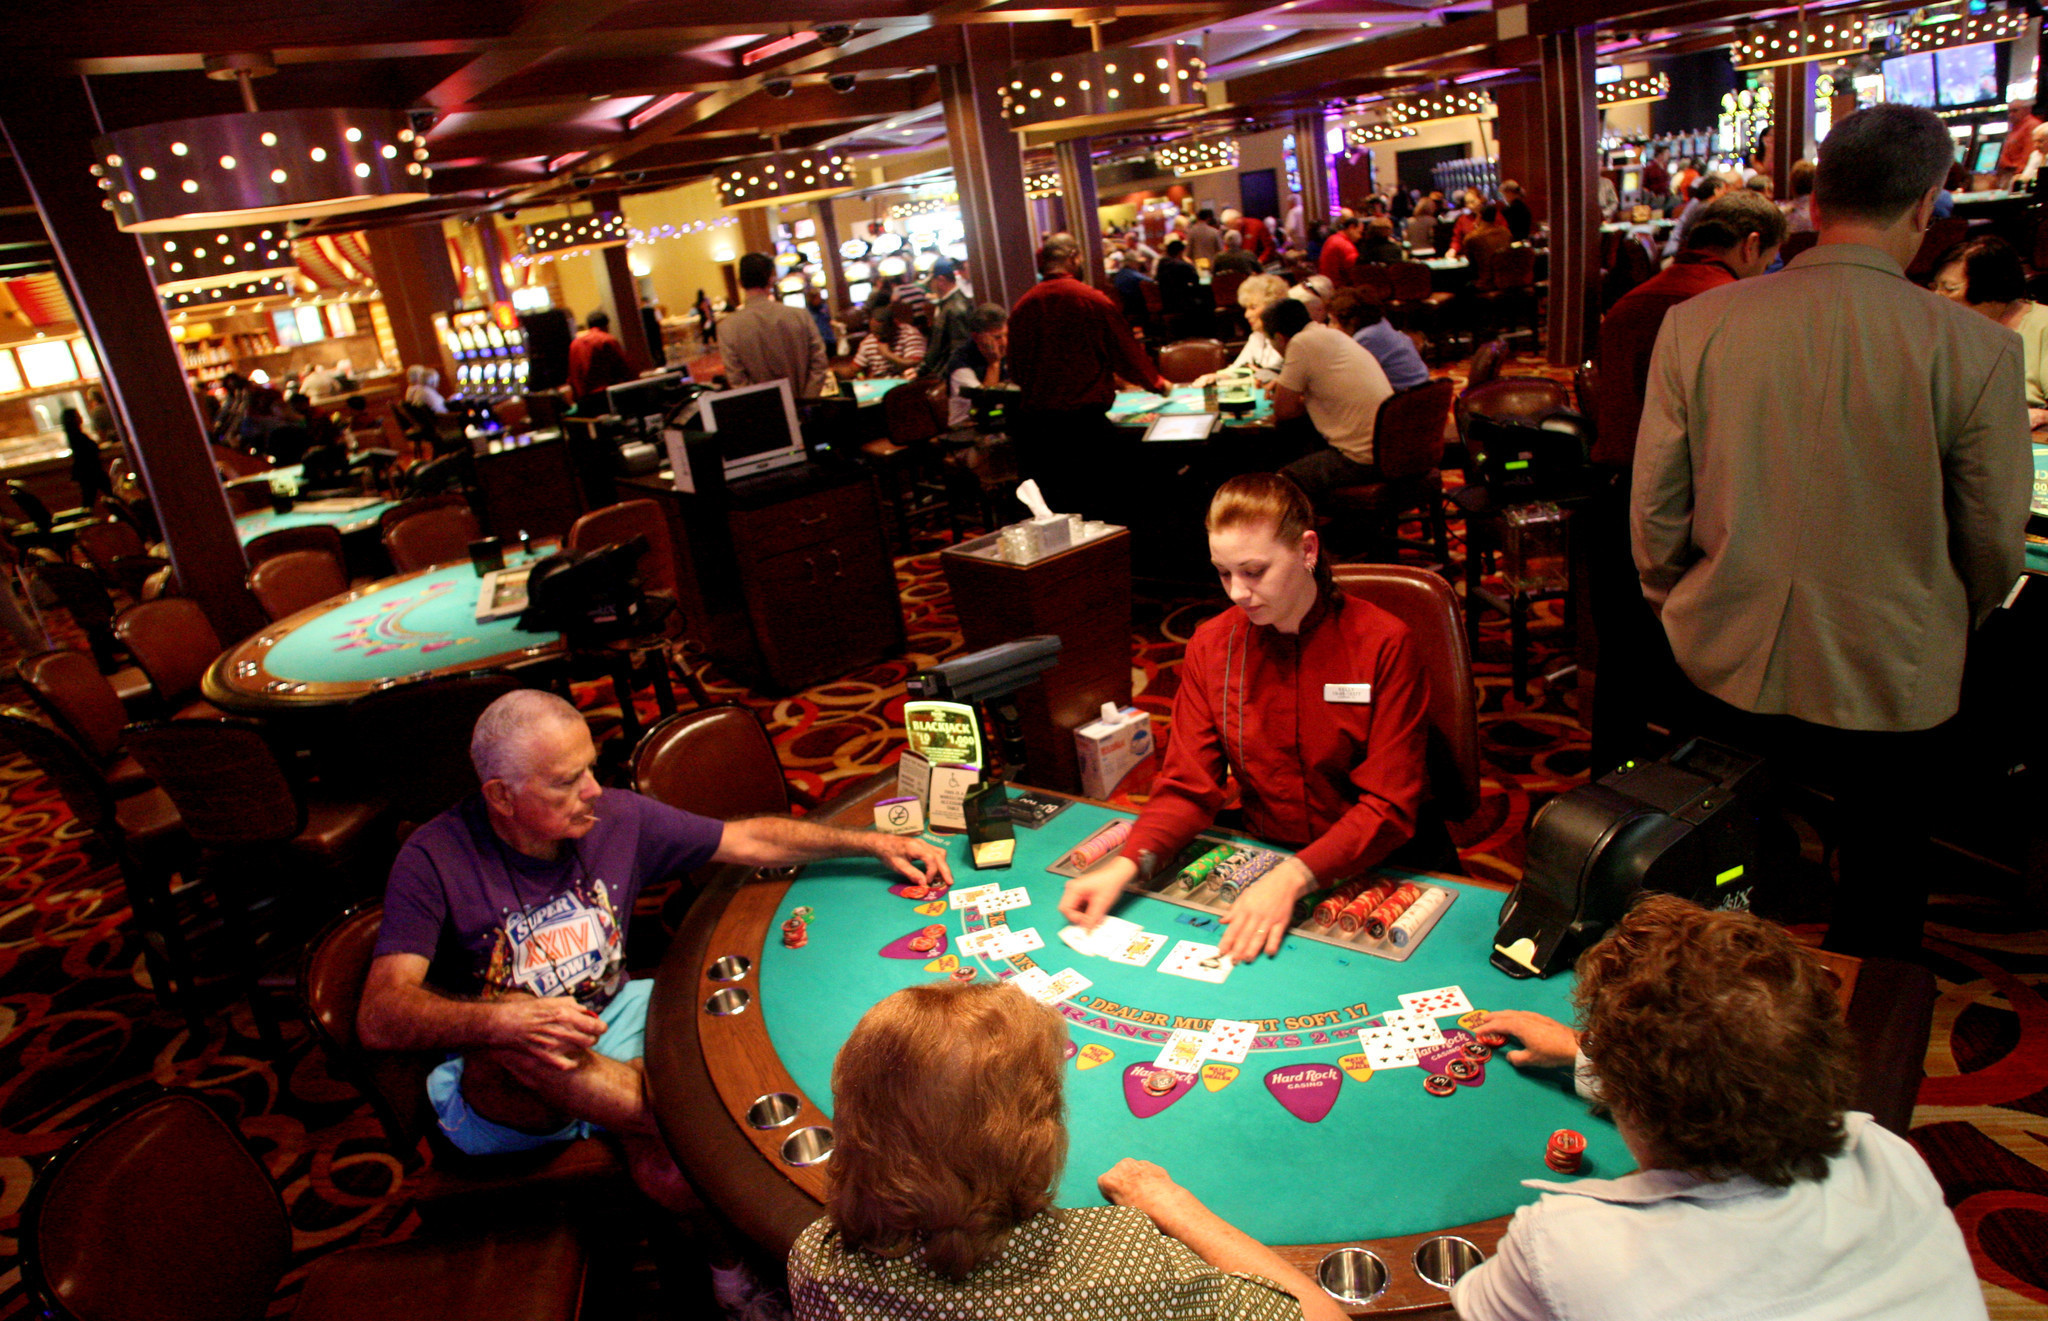 Casinos in florida with table games gambling ages for all destinations